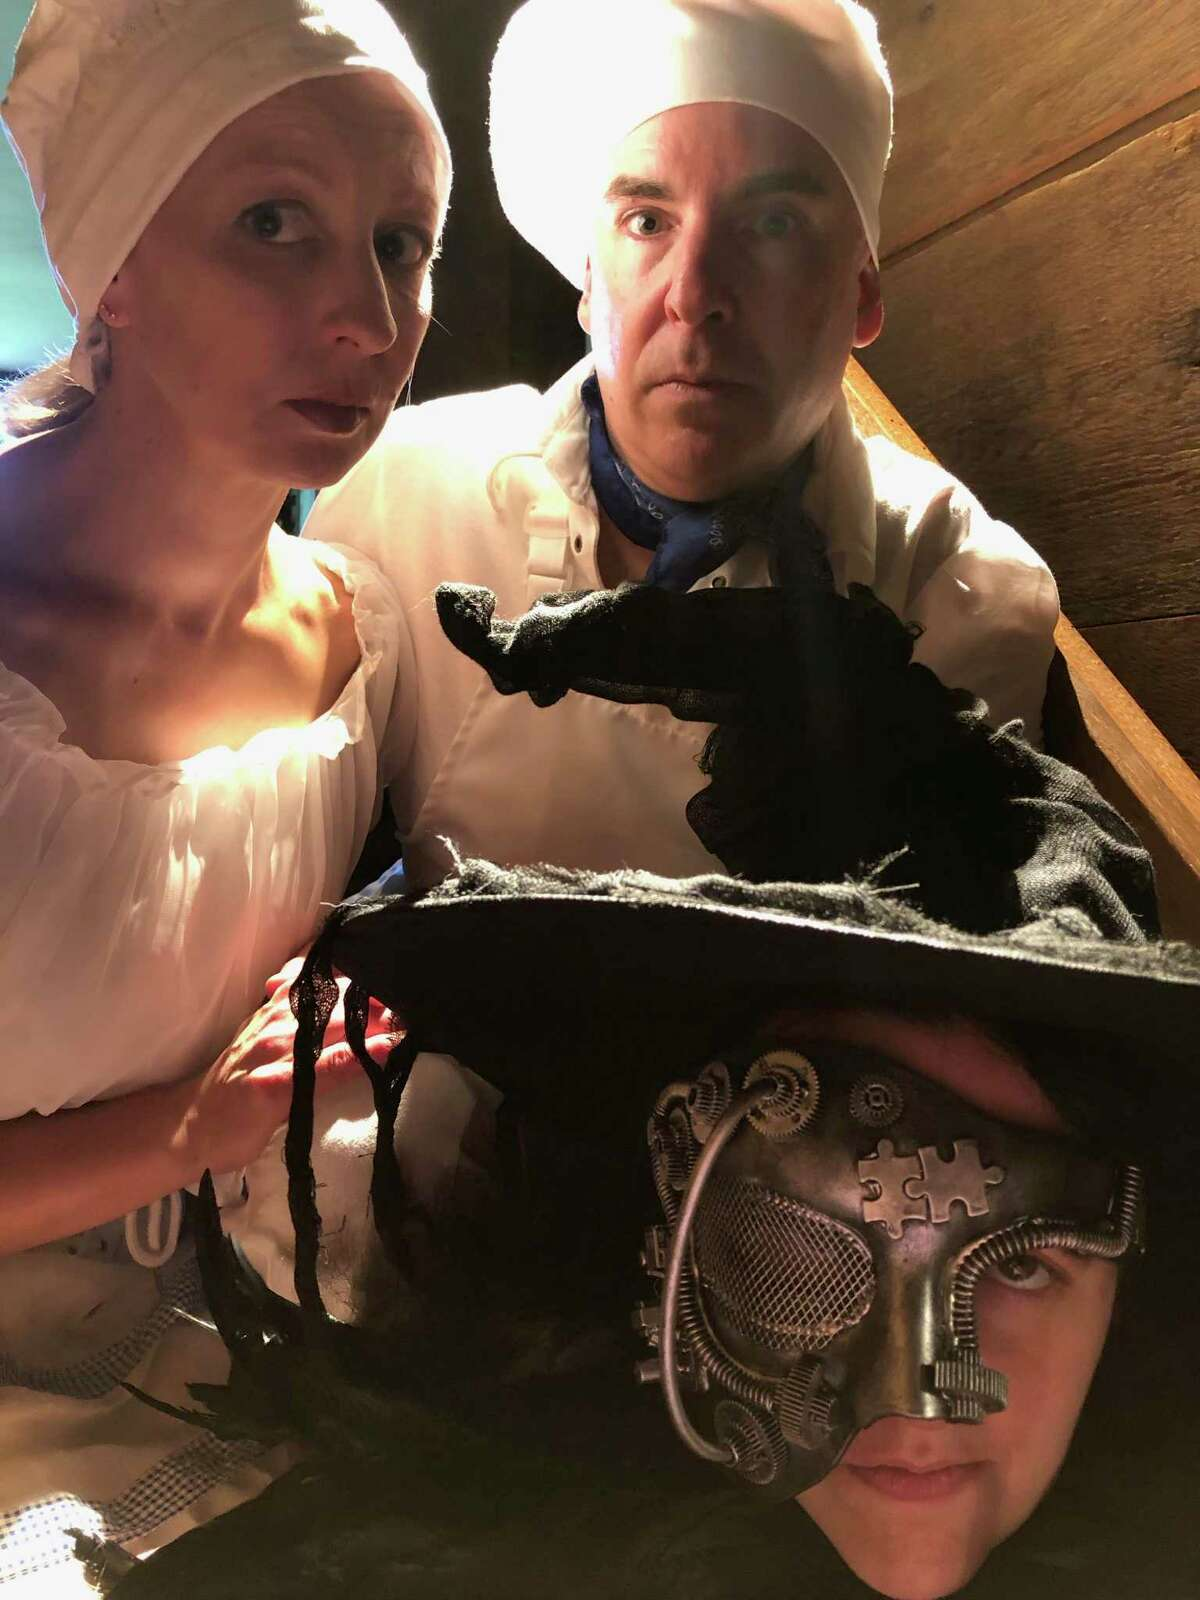 From left, Rebecca Ellis as the Baker's Wife, John Johmann as the Baker, and Joanie Brittingham as the Witch.